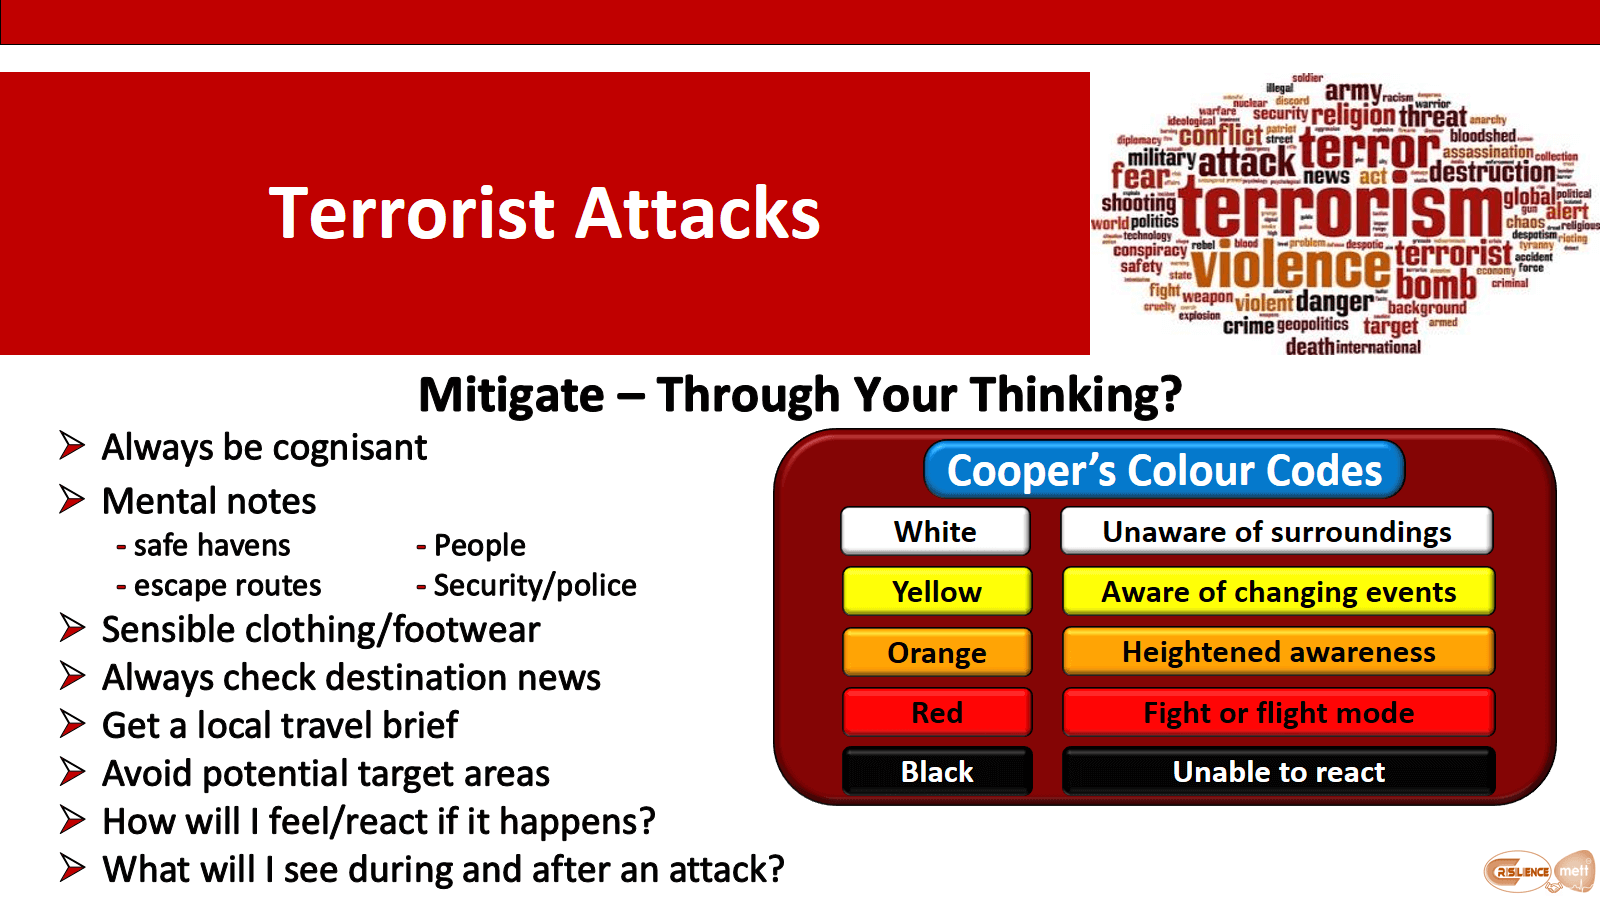 CIMAT slide 11 Terror Attacks Mitigate through your thinking